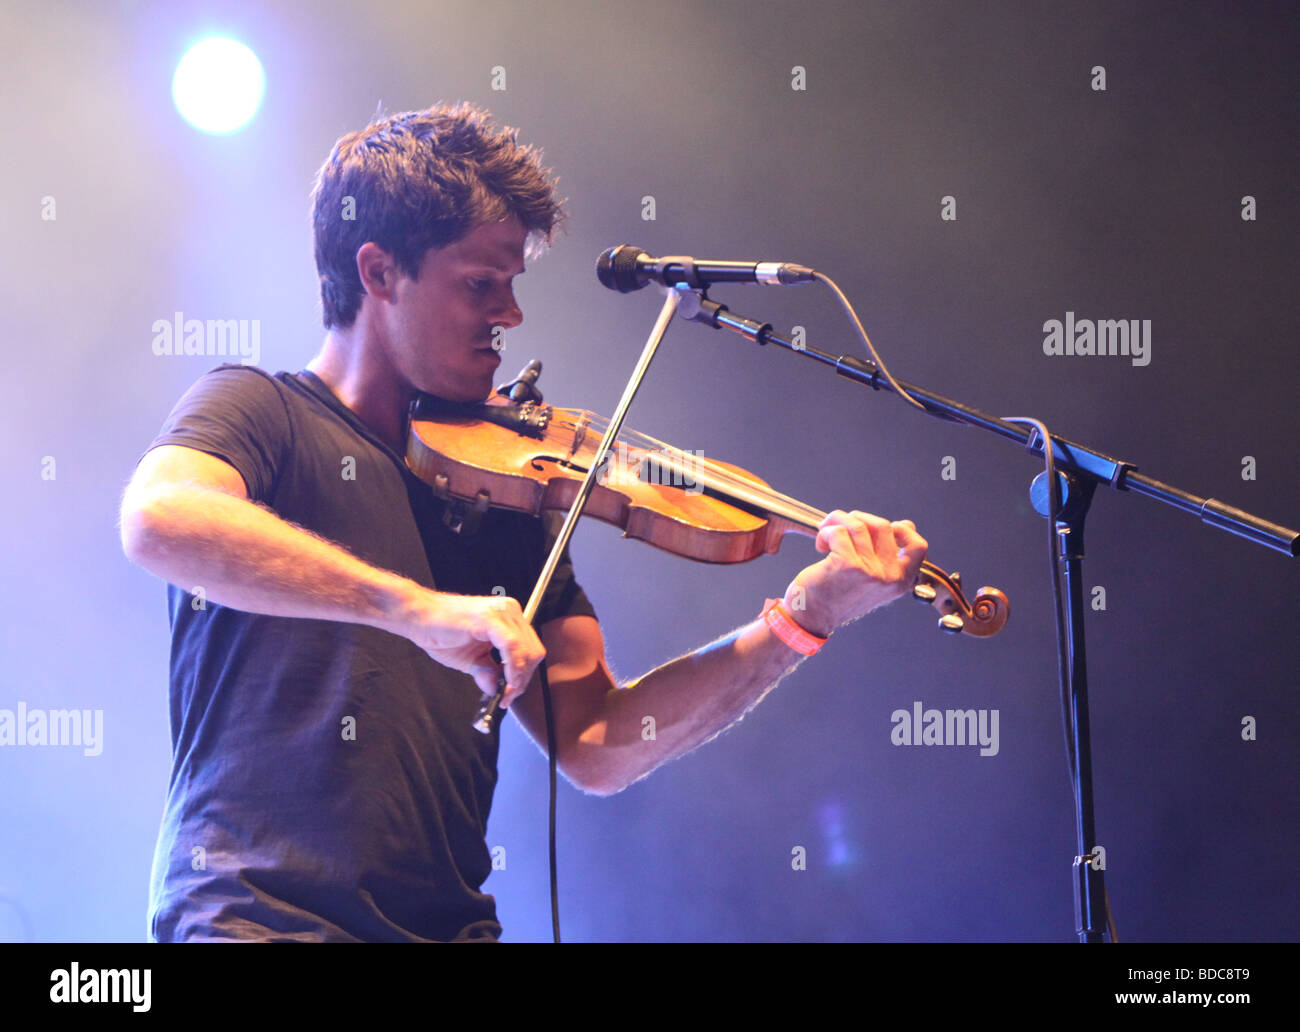 Seth Lakeman at Fairport Conventions Cropredy Festival 14th August 2009 - Stock Image